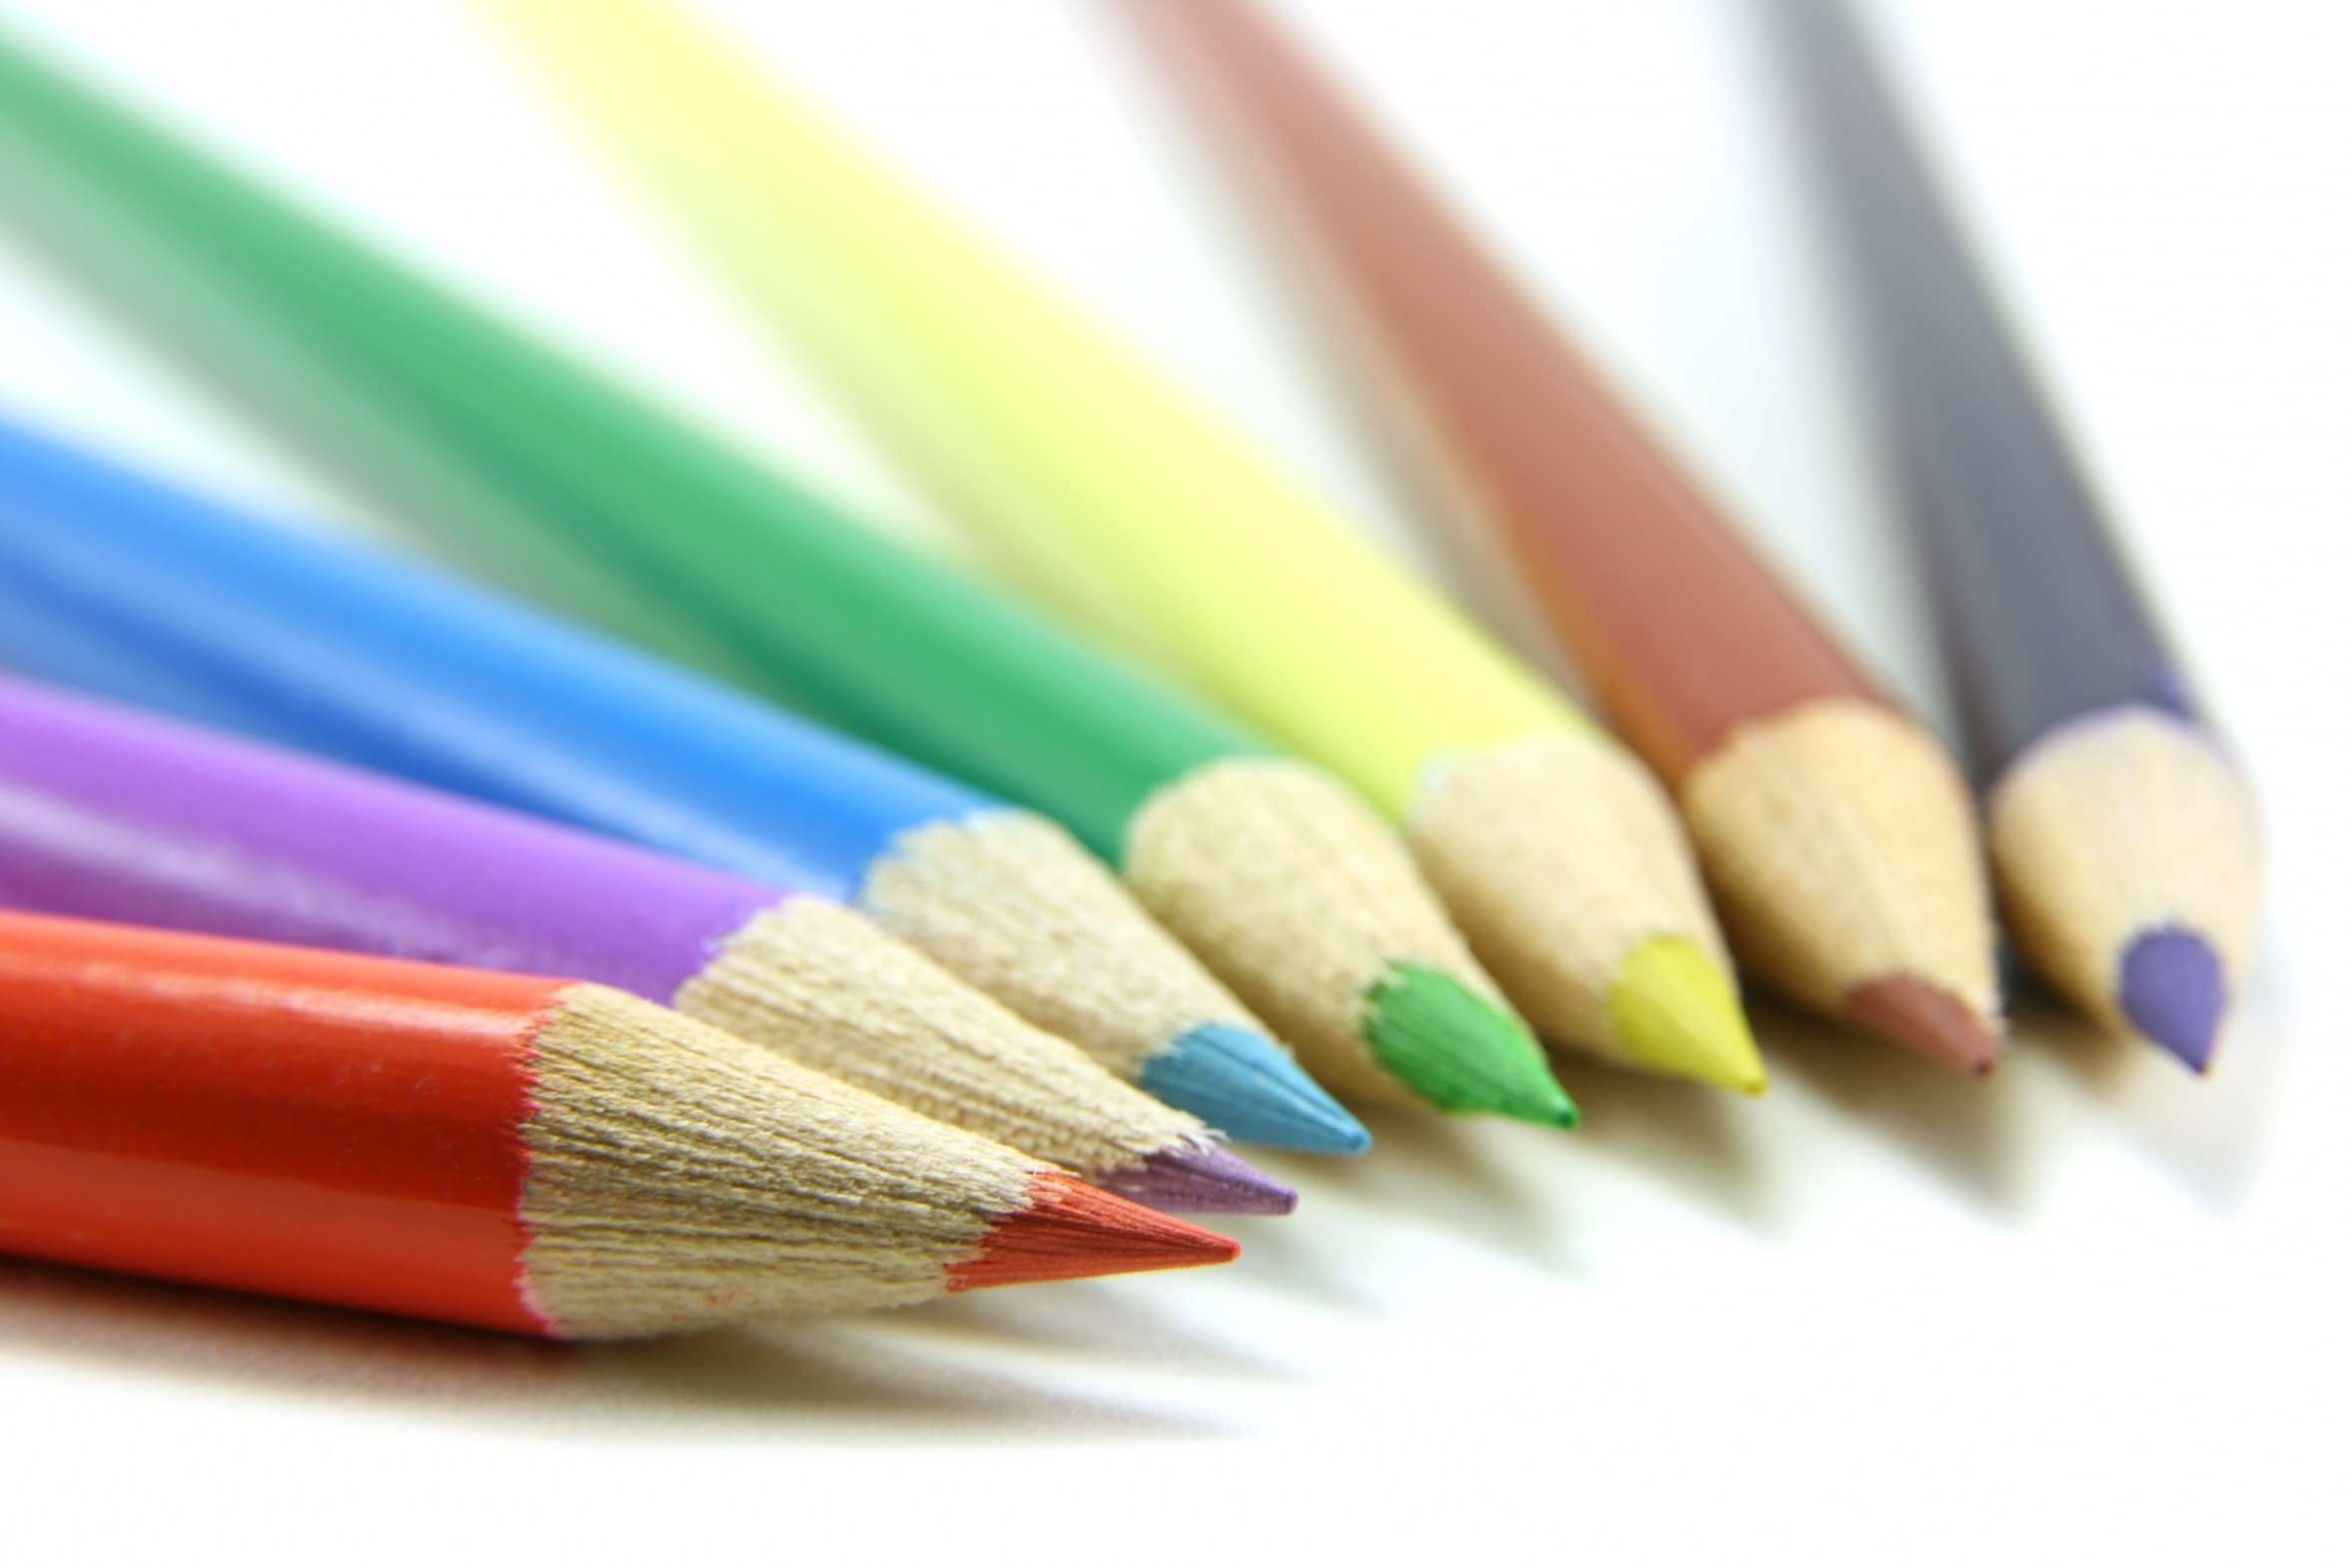 web-site-can-we-help-crayons-image-030307